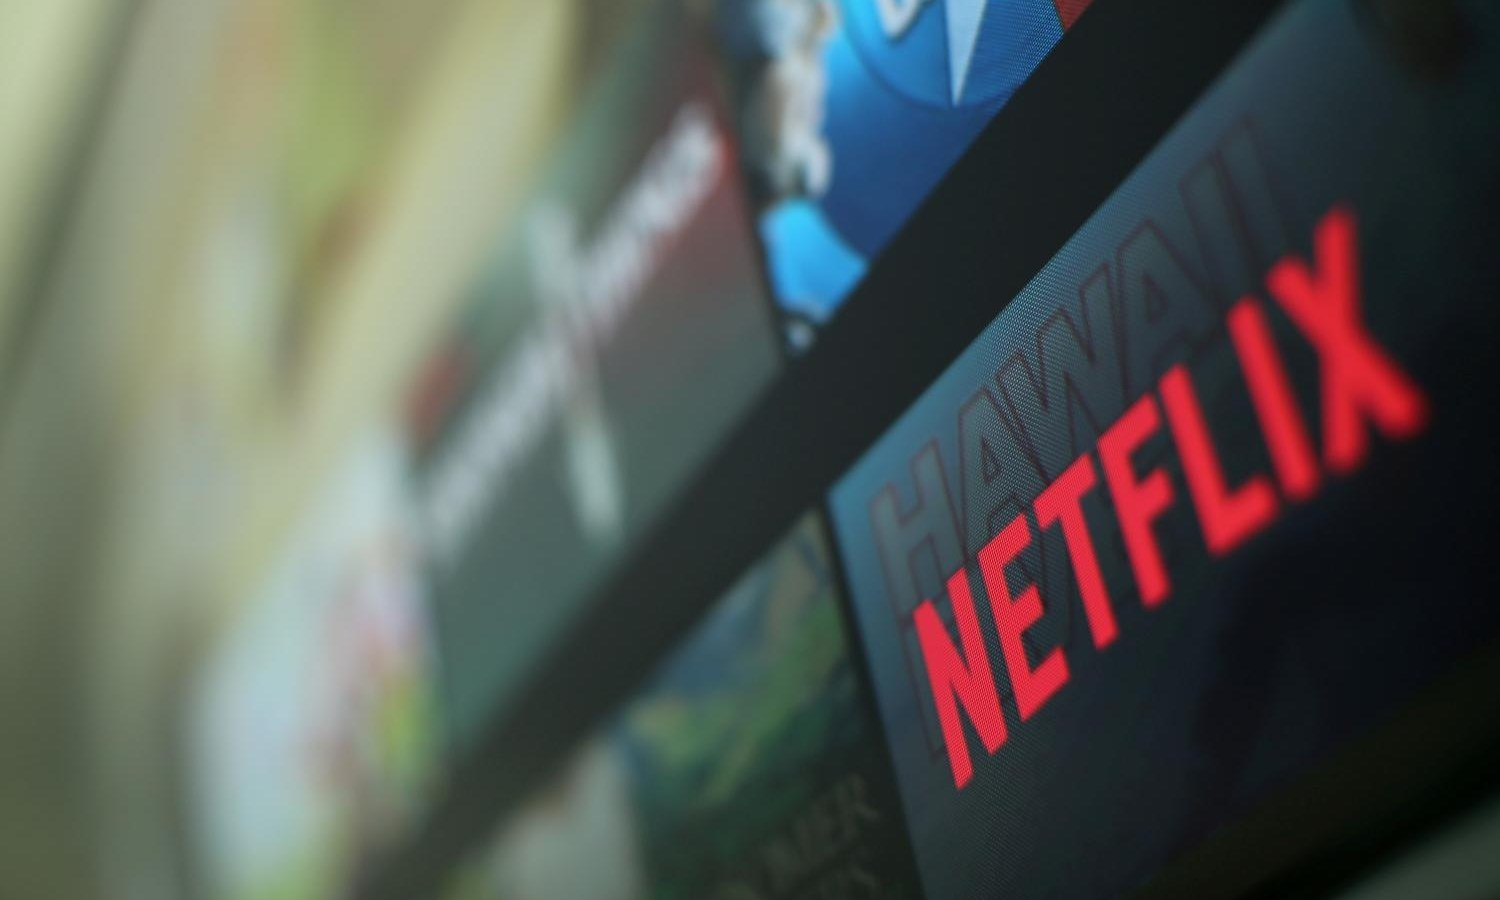 Netflix says it does not agree with Chinese author's views on Uighur Muslims